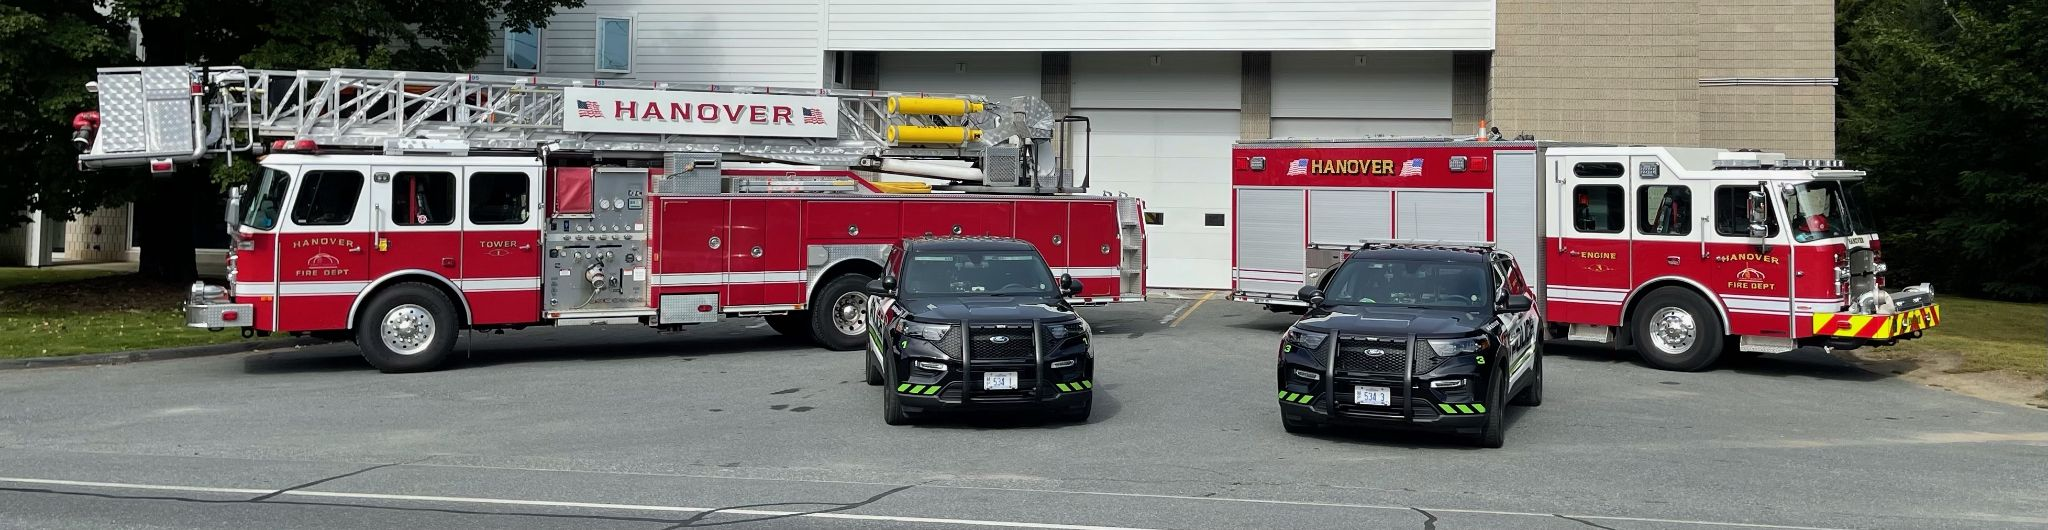 Hanover Fire and Police departments vehicles